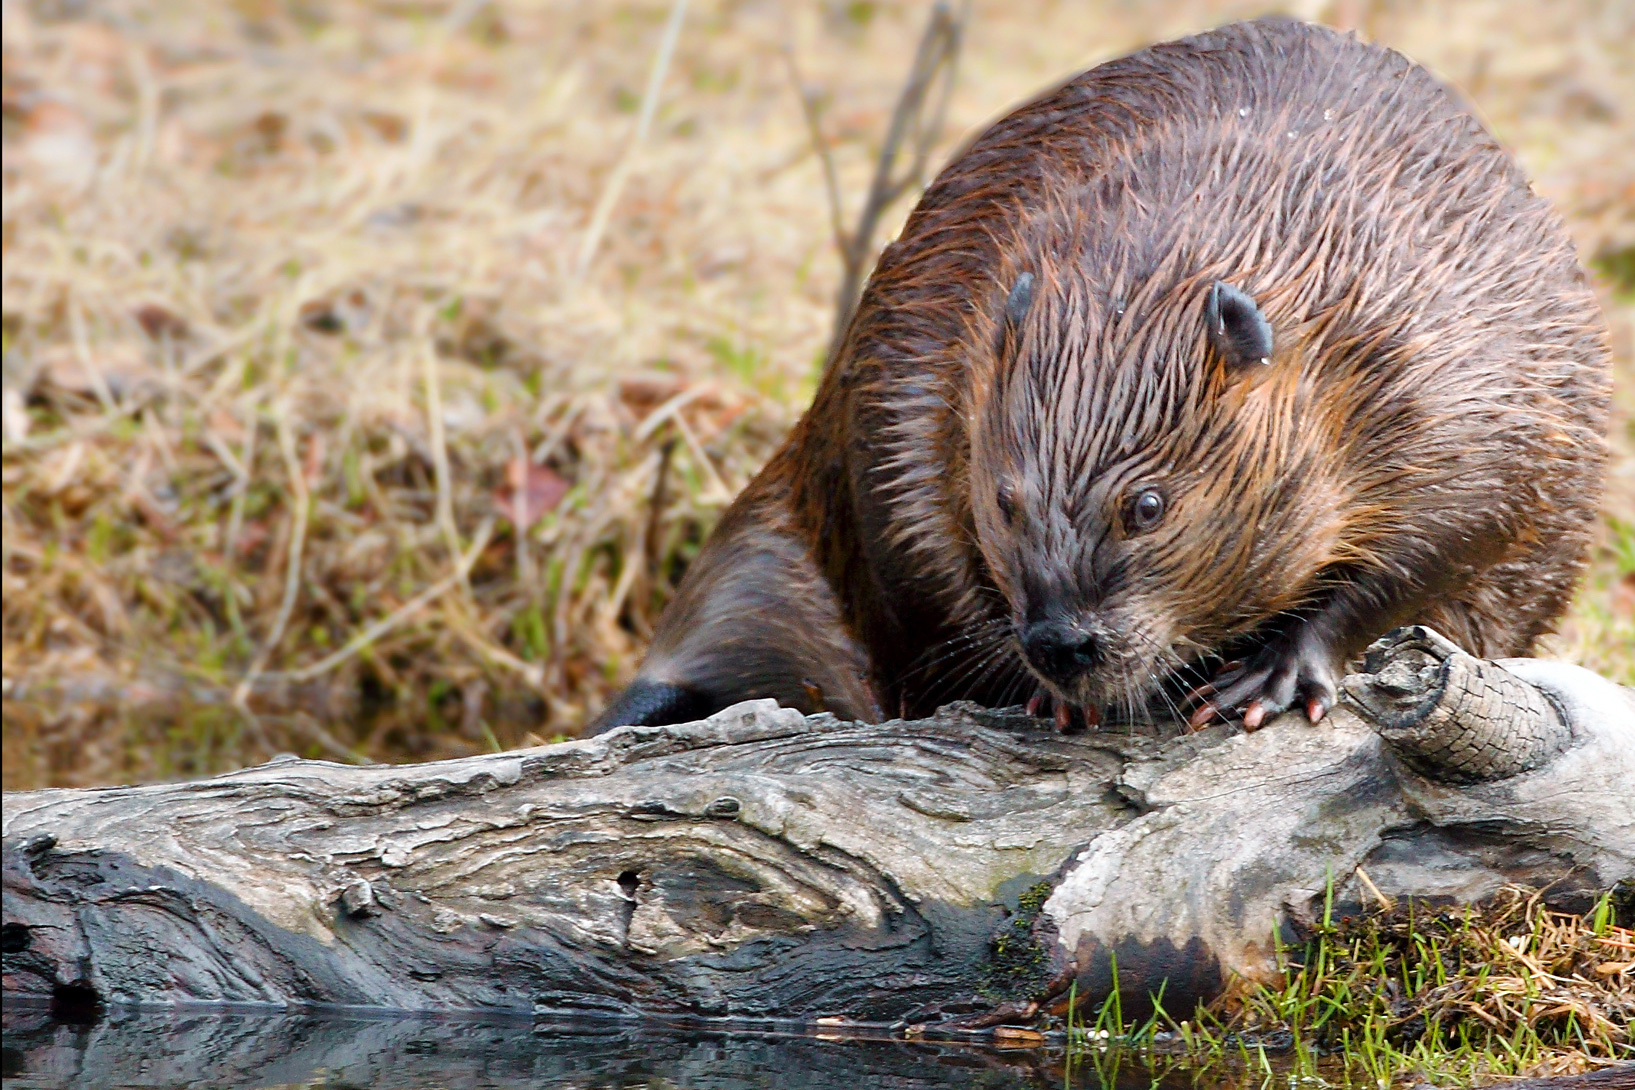 Beaver activity will cause water to pond, leading to a lush, diverse wetland and riparian habitat along Chicken Creek and throughout the project area.